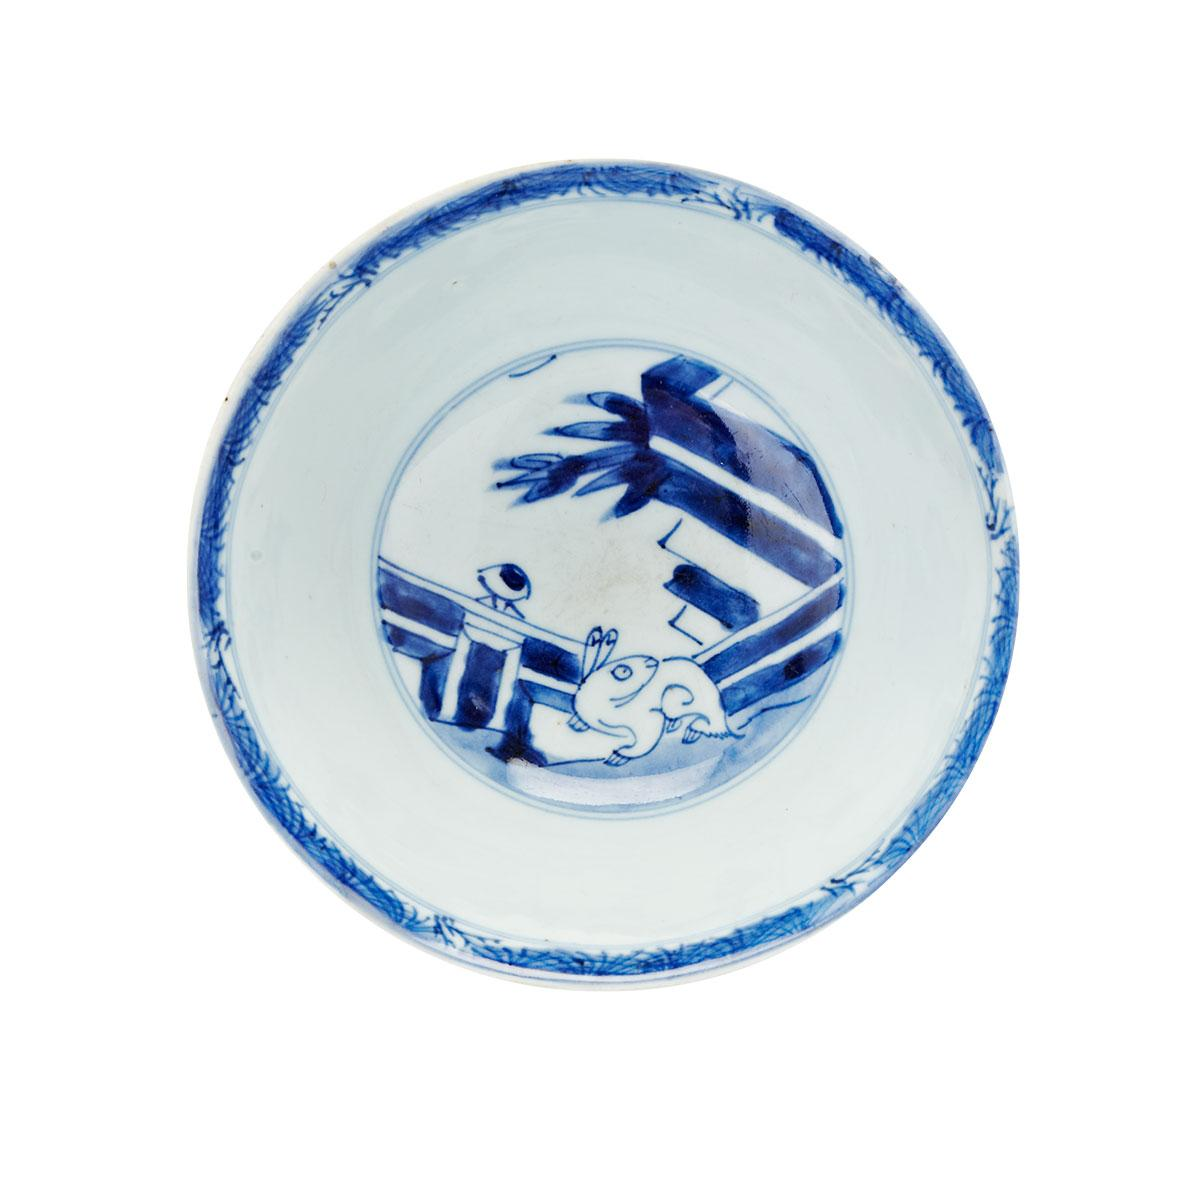 Blue and White Mythical Beast Bowl, Shende Tang Mark, 19th Century